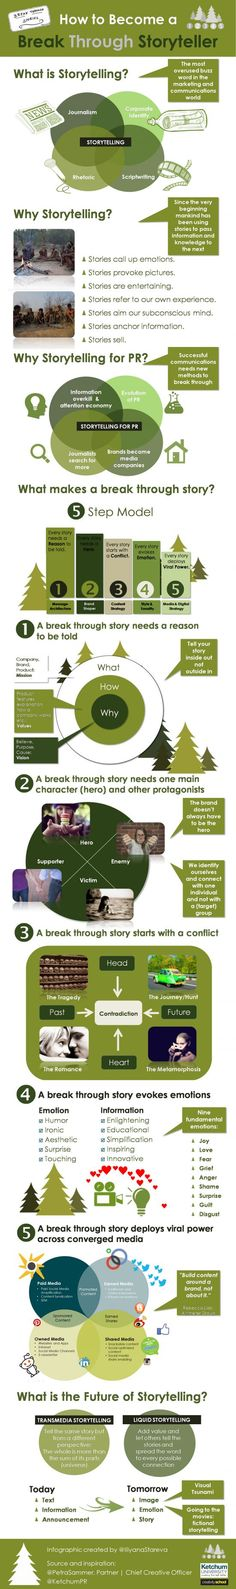 How to Become a Break Through Storyteller #Infographic #Storytelling #DigitalMarketing